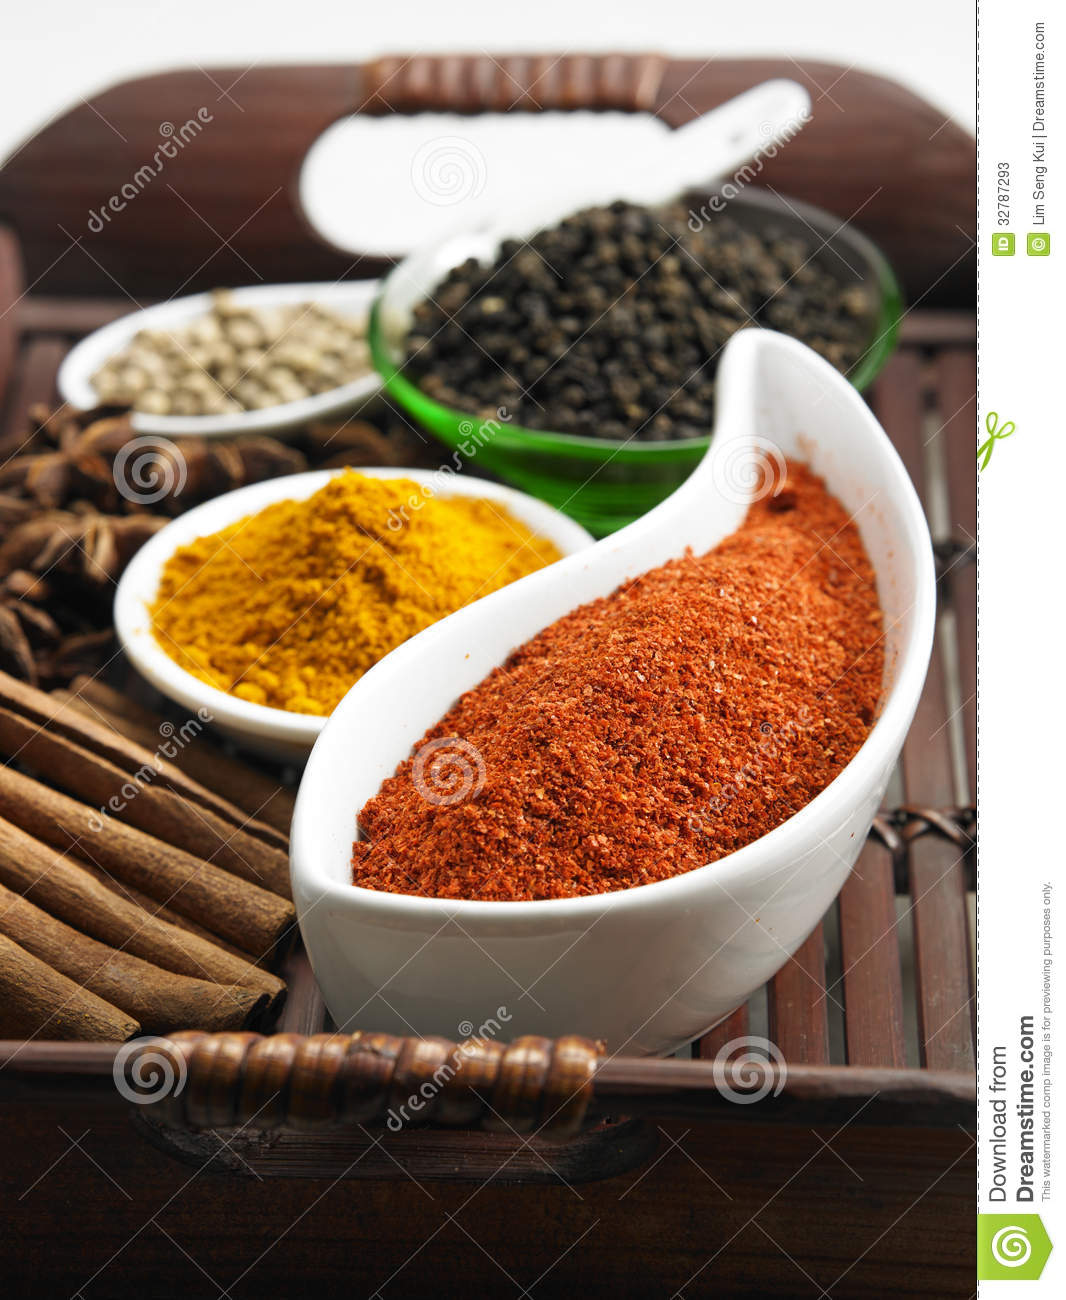 Tray of spices stock photos image 32787293 for 7 spices asian cuisine